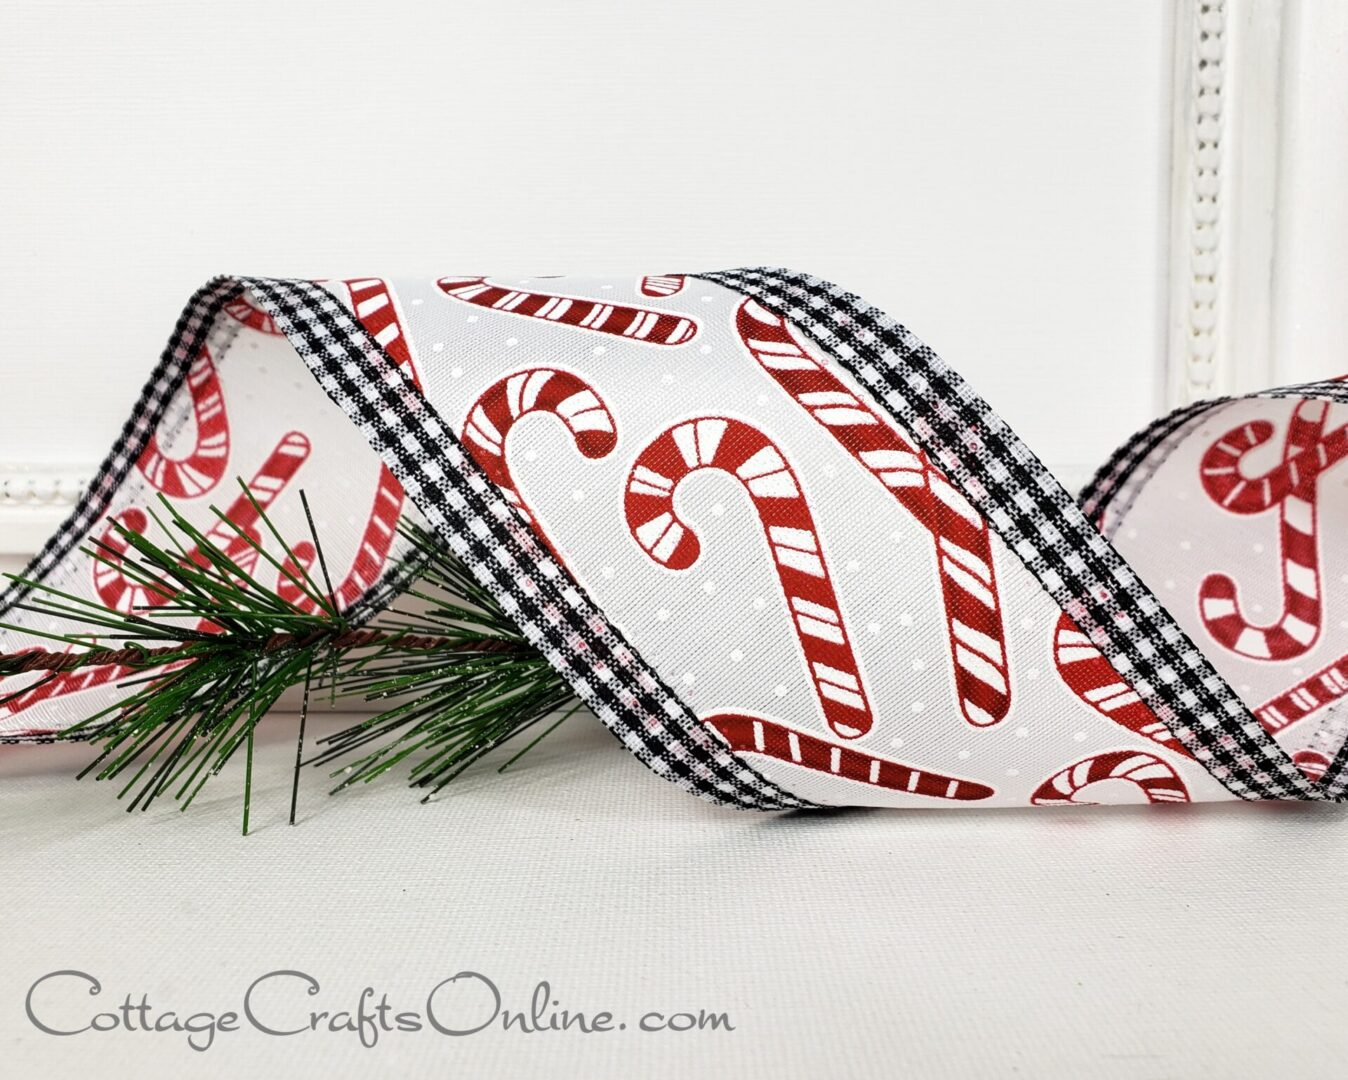 Candy Cane Gingham cb 40 red black white-011